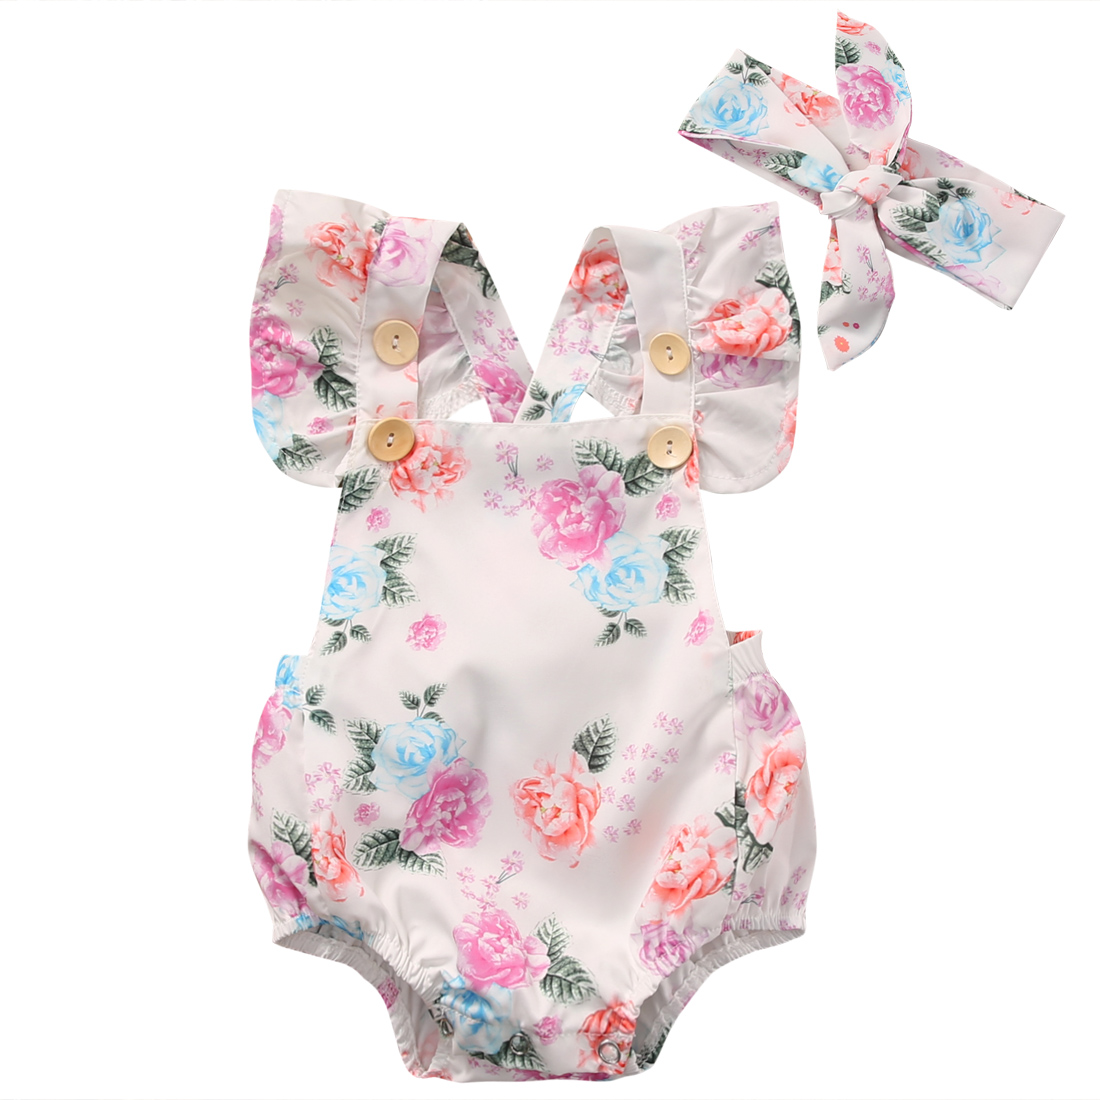 2017 Cute Floral Infant Baby Girls Summer Flower Romper Sunsuit+Headband Cotton Outfits Set Clothes